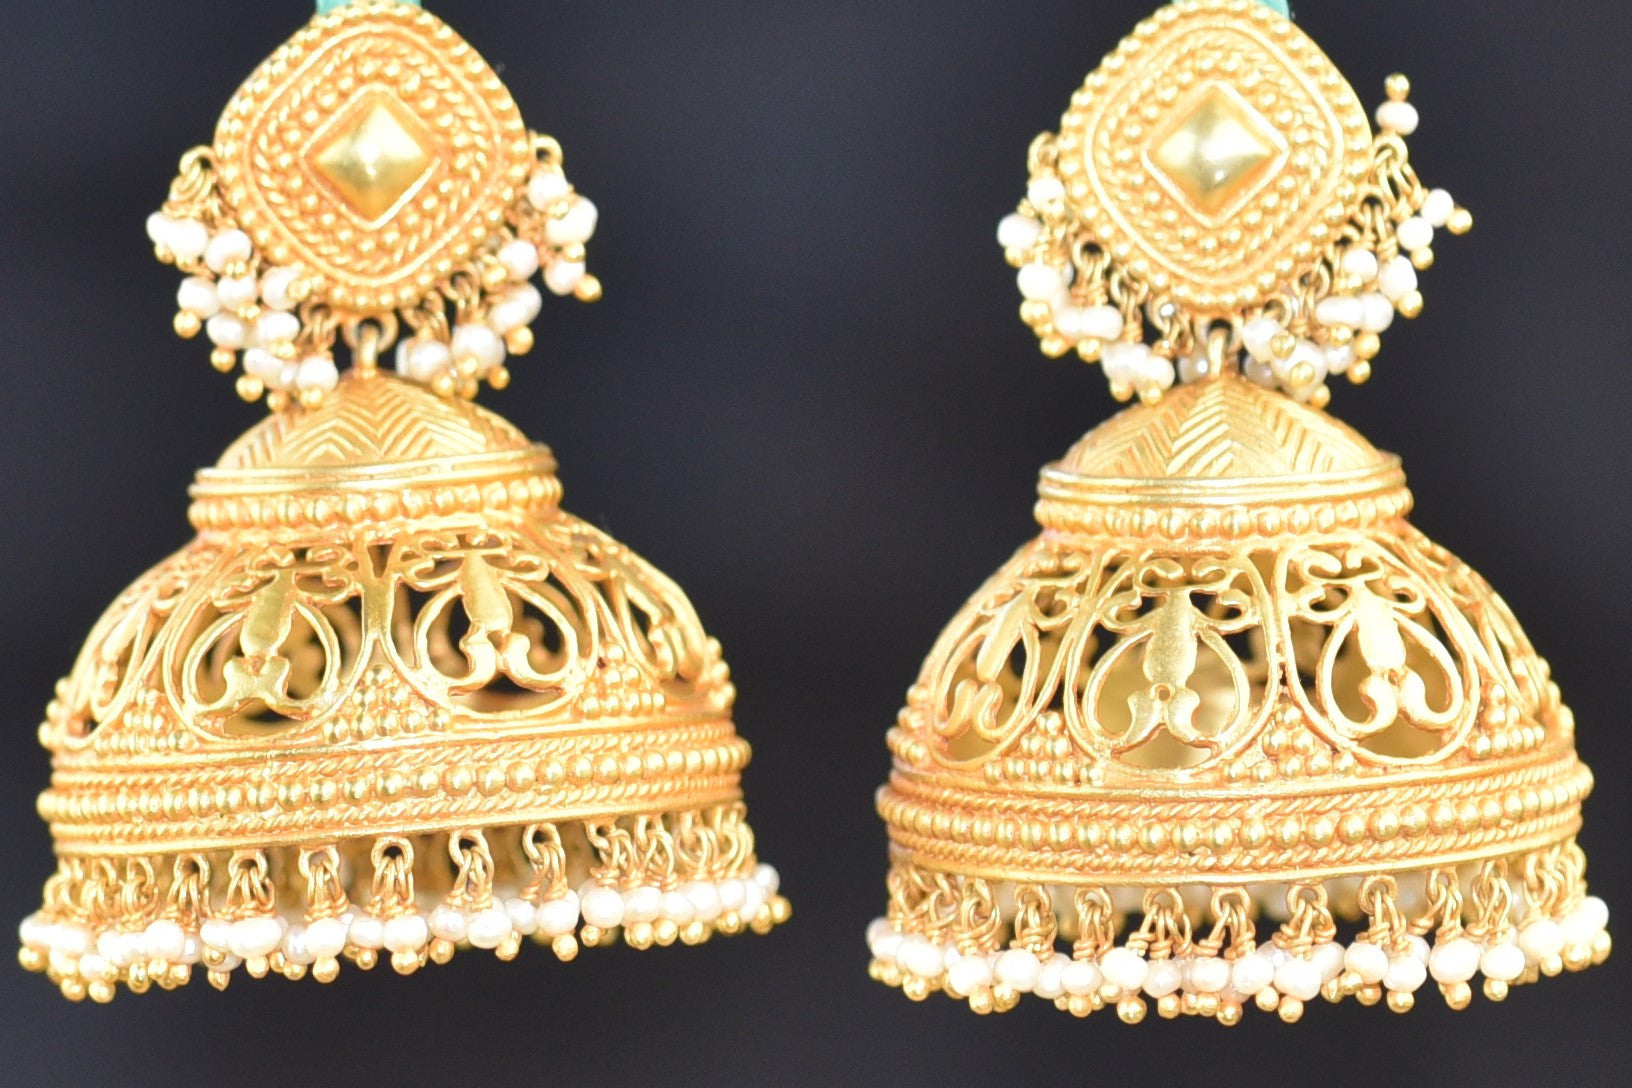 20a600-traditional-amrapali-pearl-jhumka-earrings-A